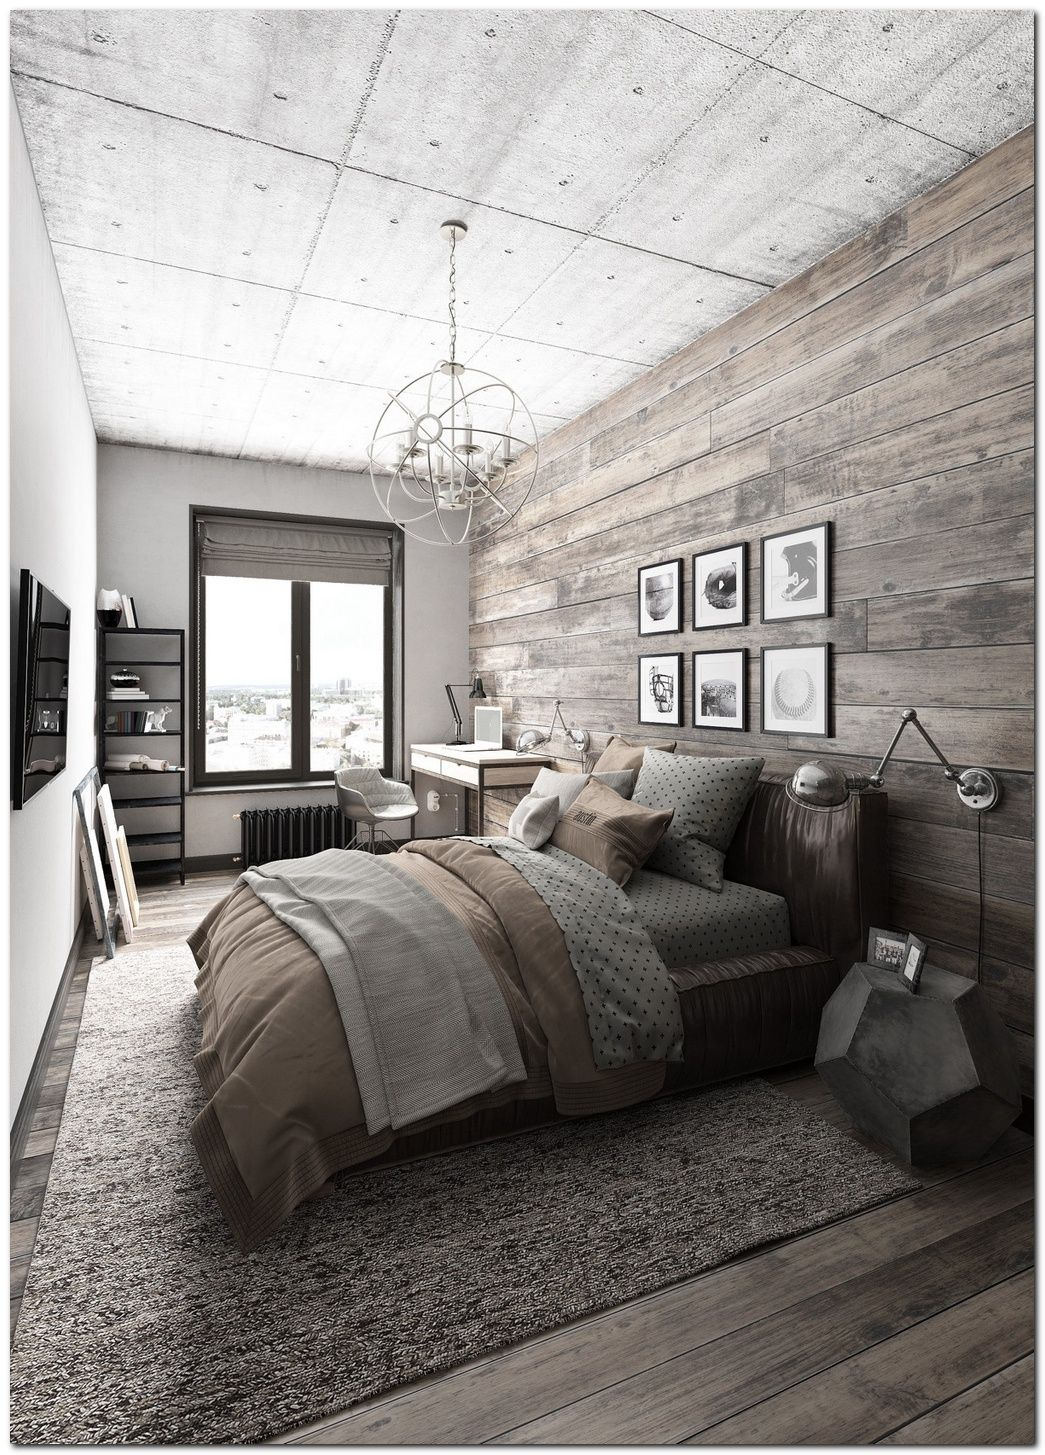 10+ Ideas for Industrial Bedroom Interior - The Urban Interior